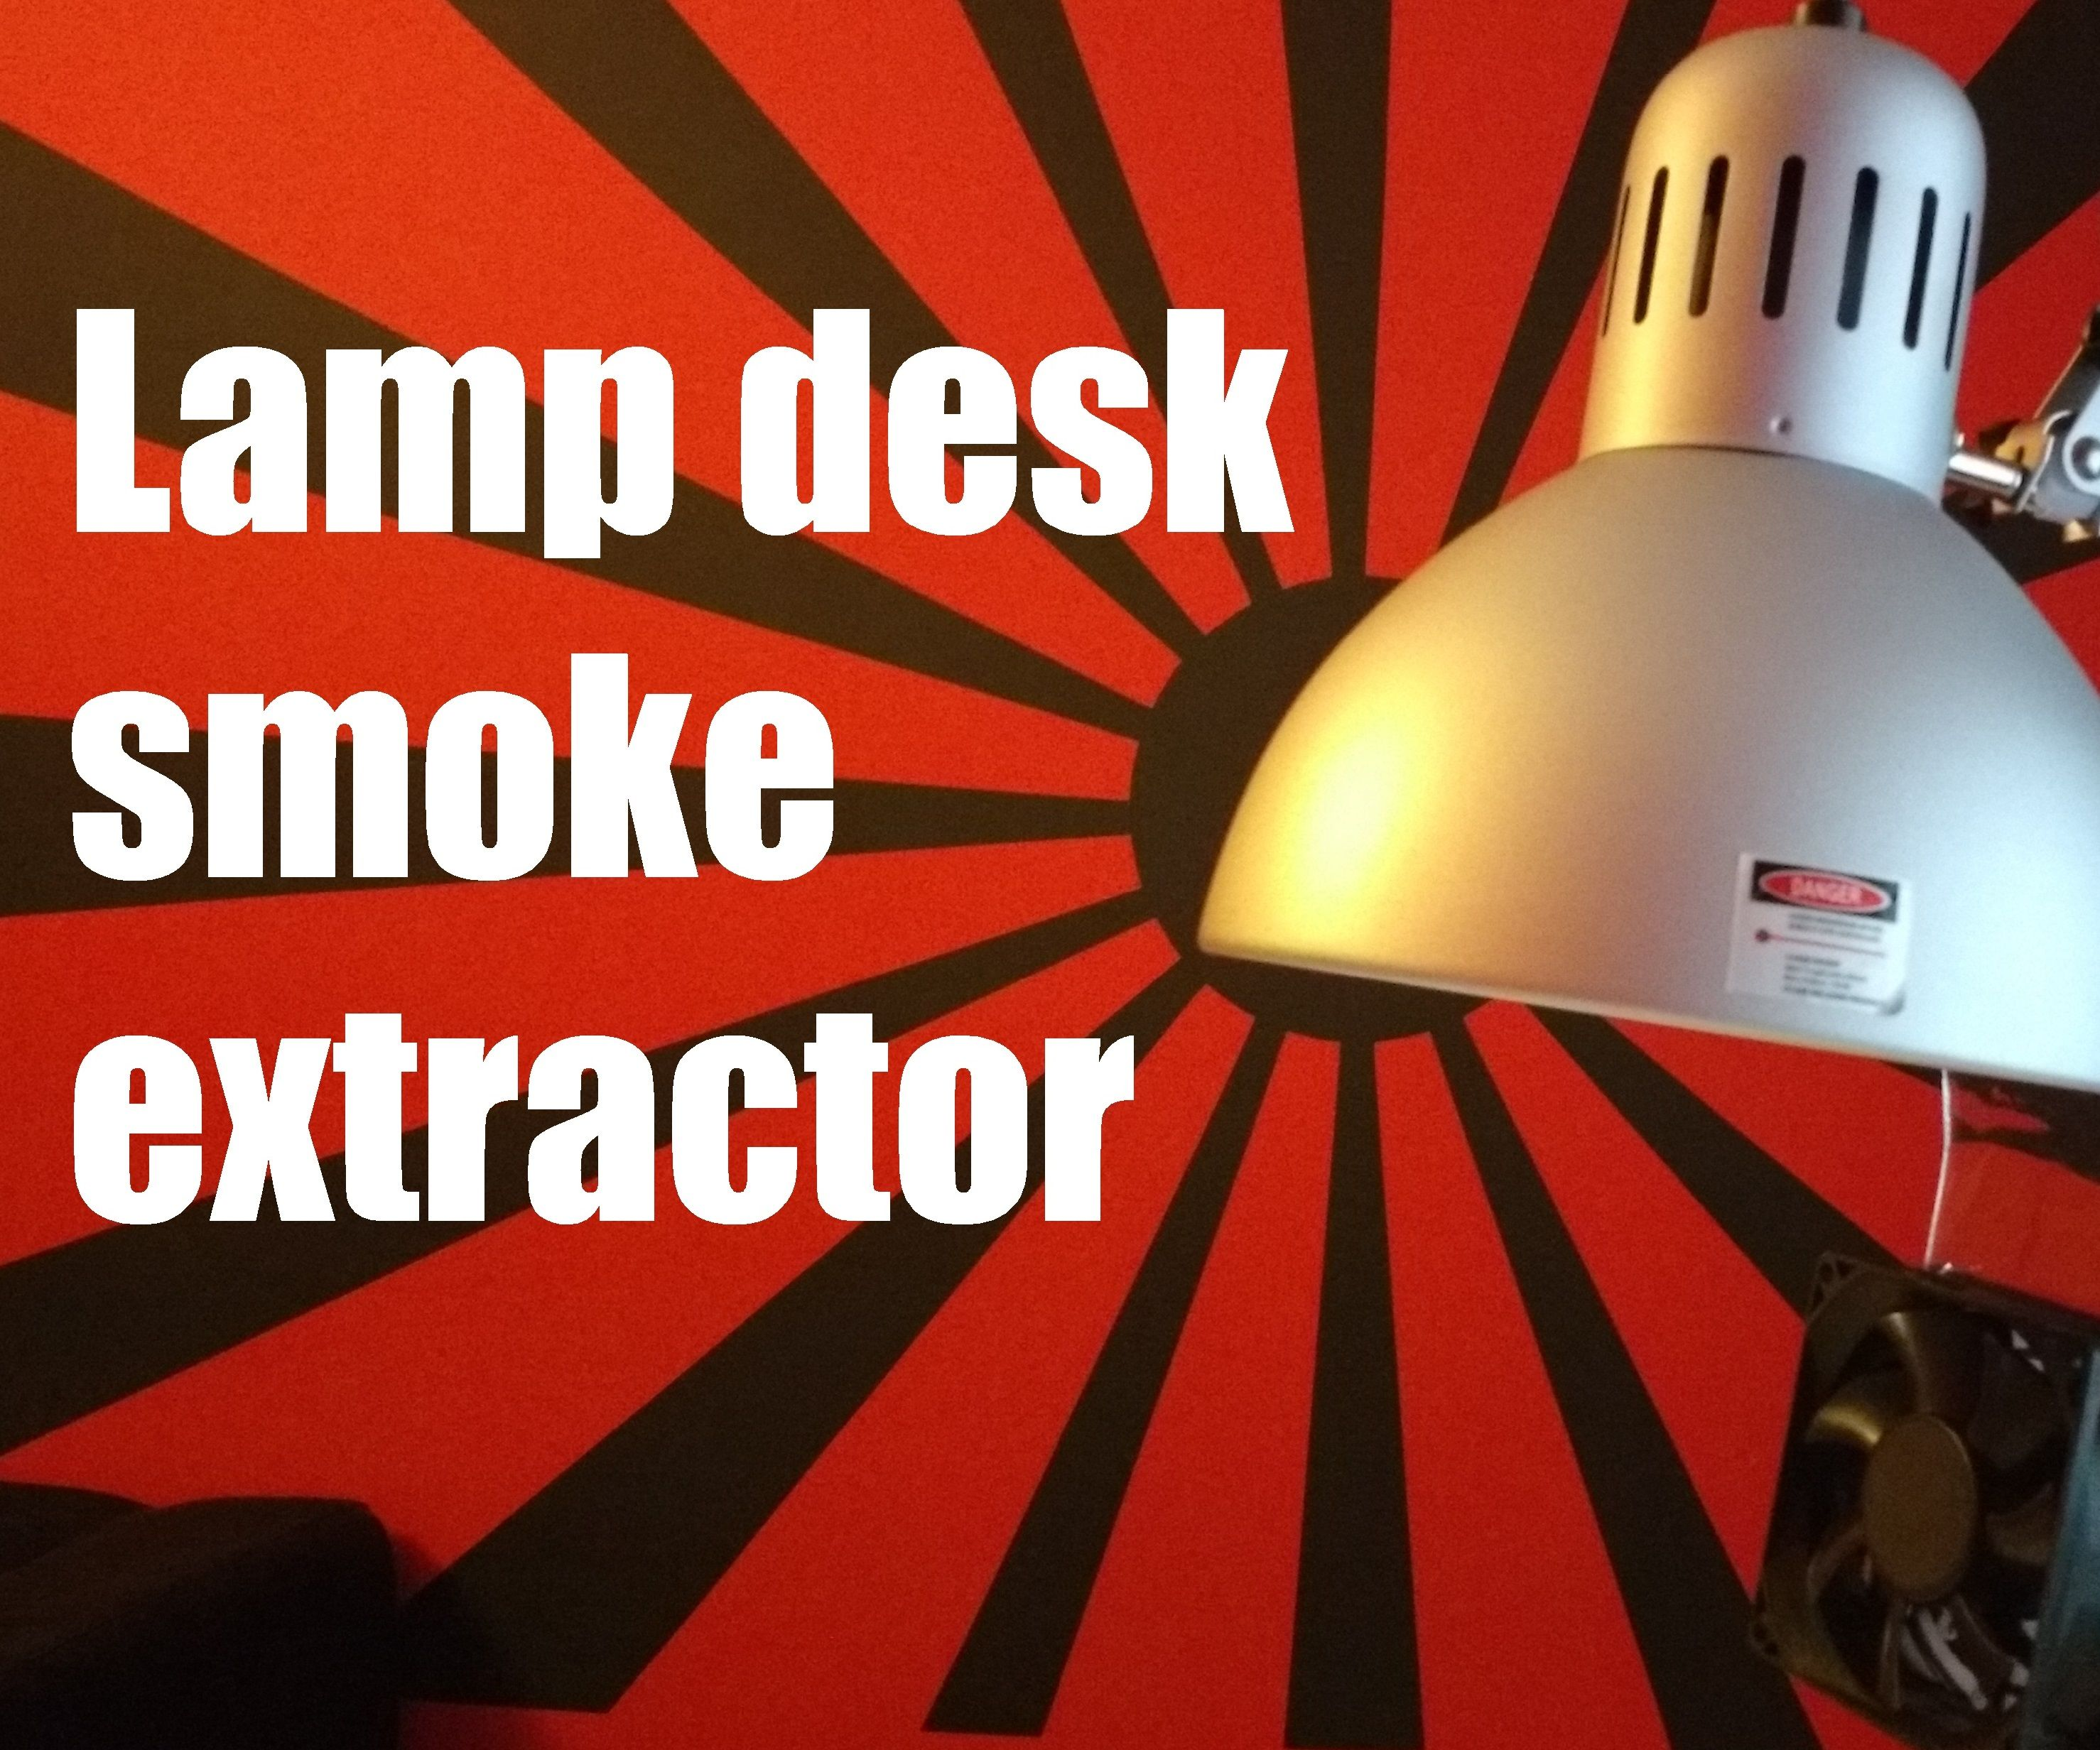 Desk lamp smoke extractor